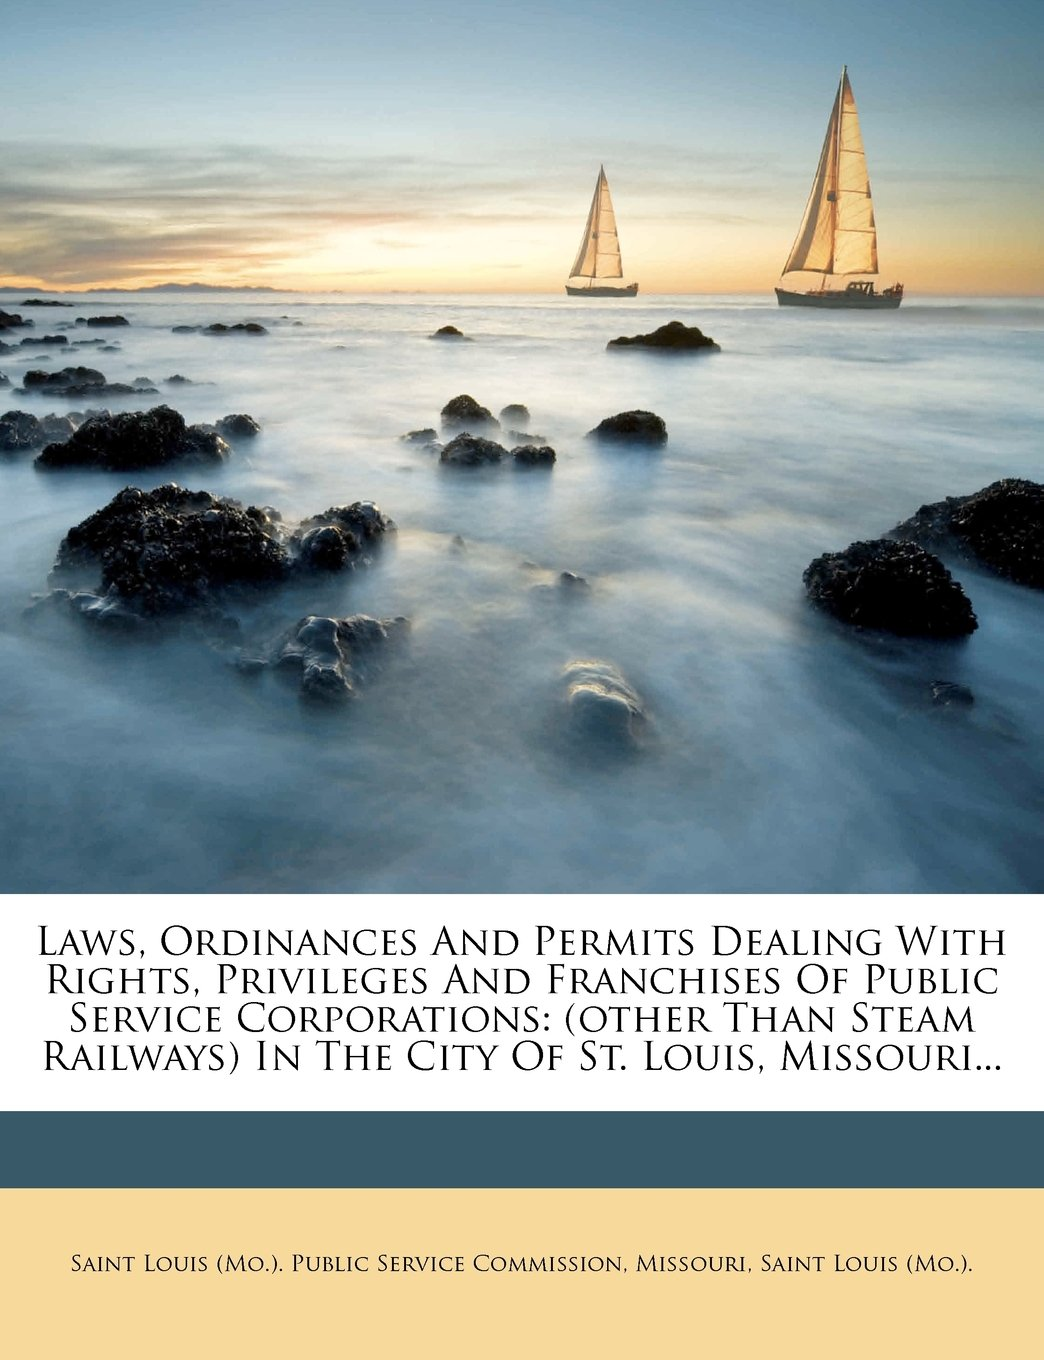 Laws, Ordinances And Permits Dealing With Rights, Privileges And Franchises Of Public Service Corporations: (other Than Steam Railways) In The City Of St. Louis, Missouri... PDF ePub ebook